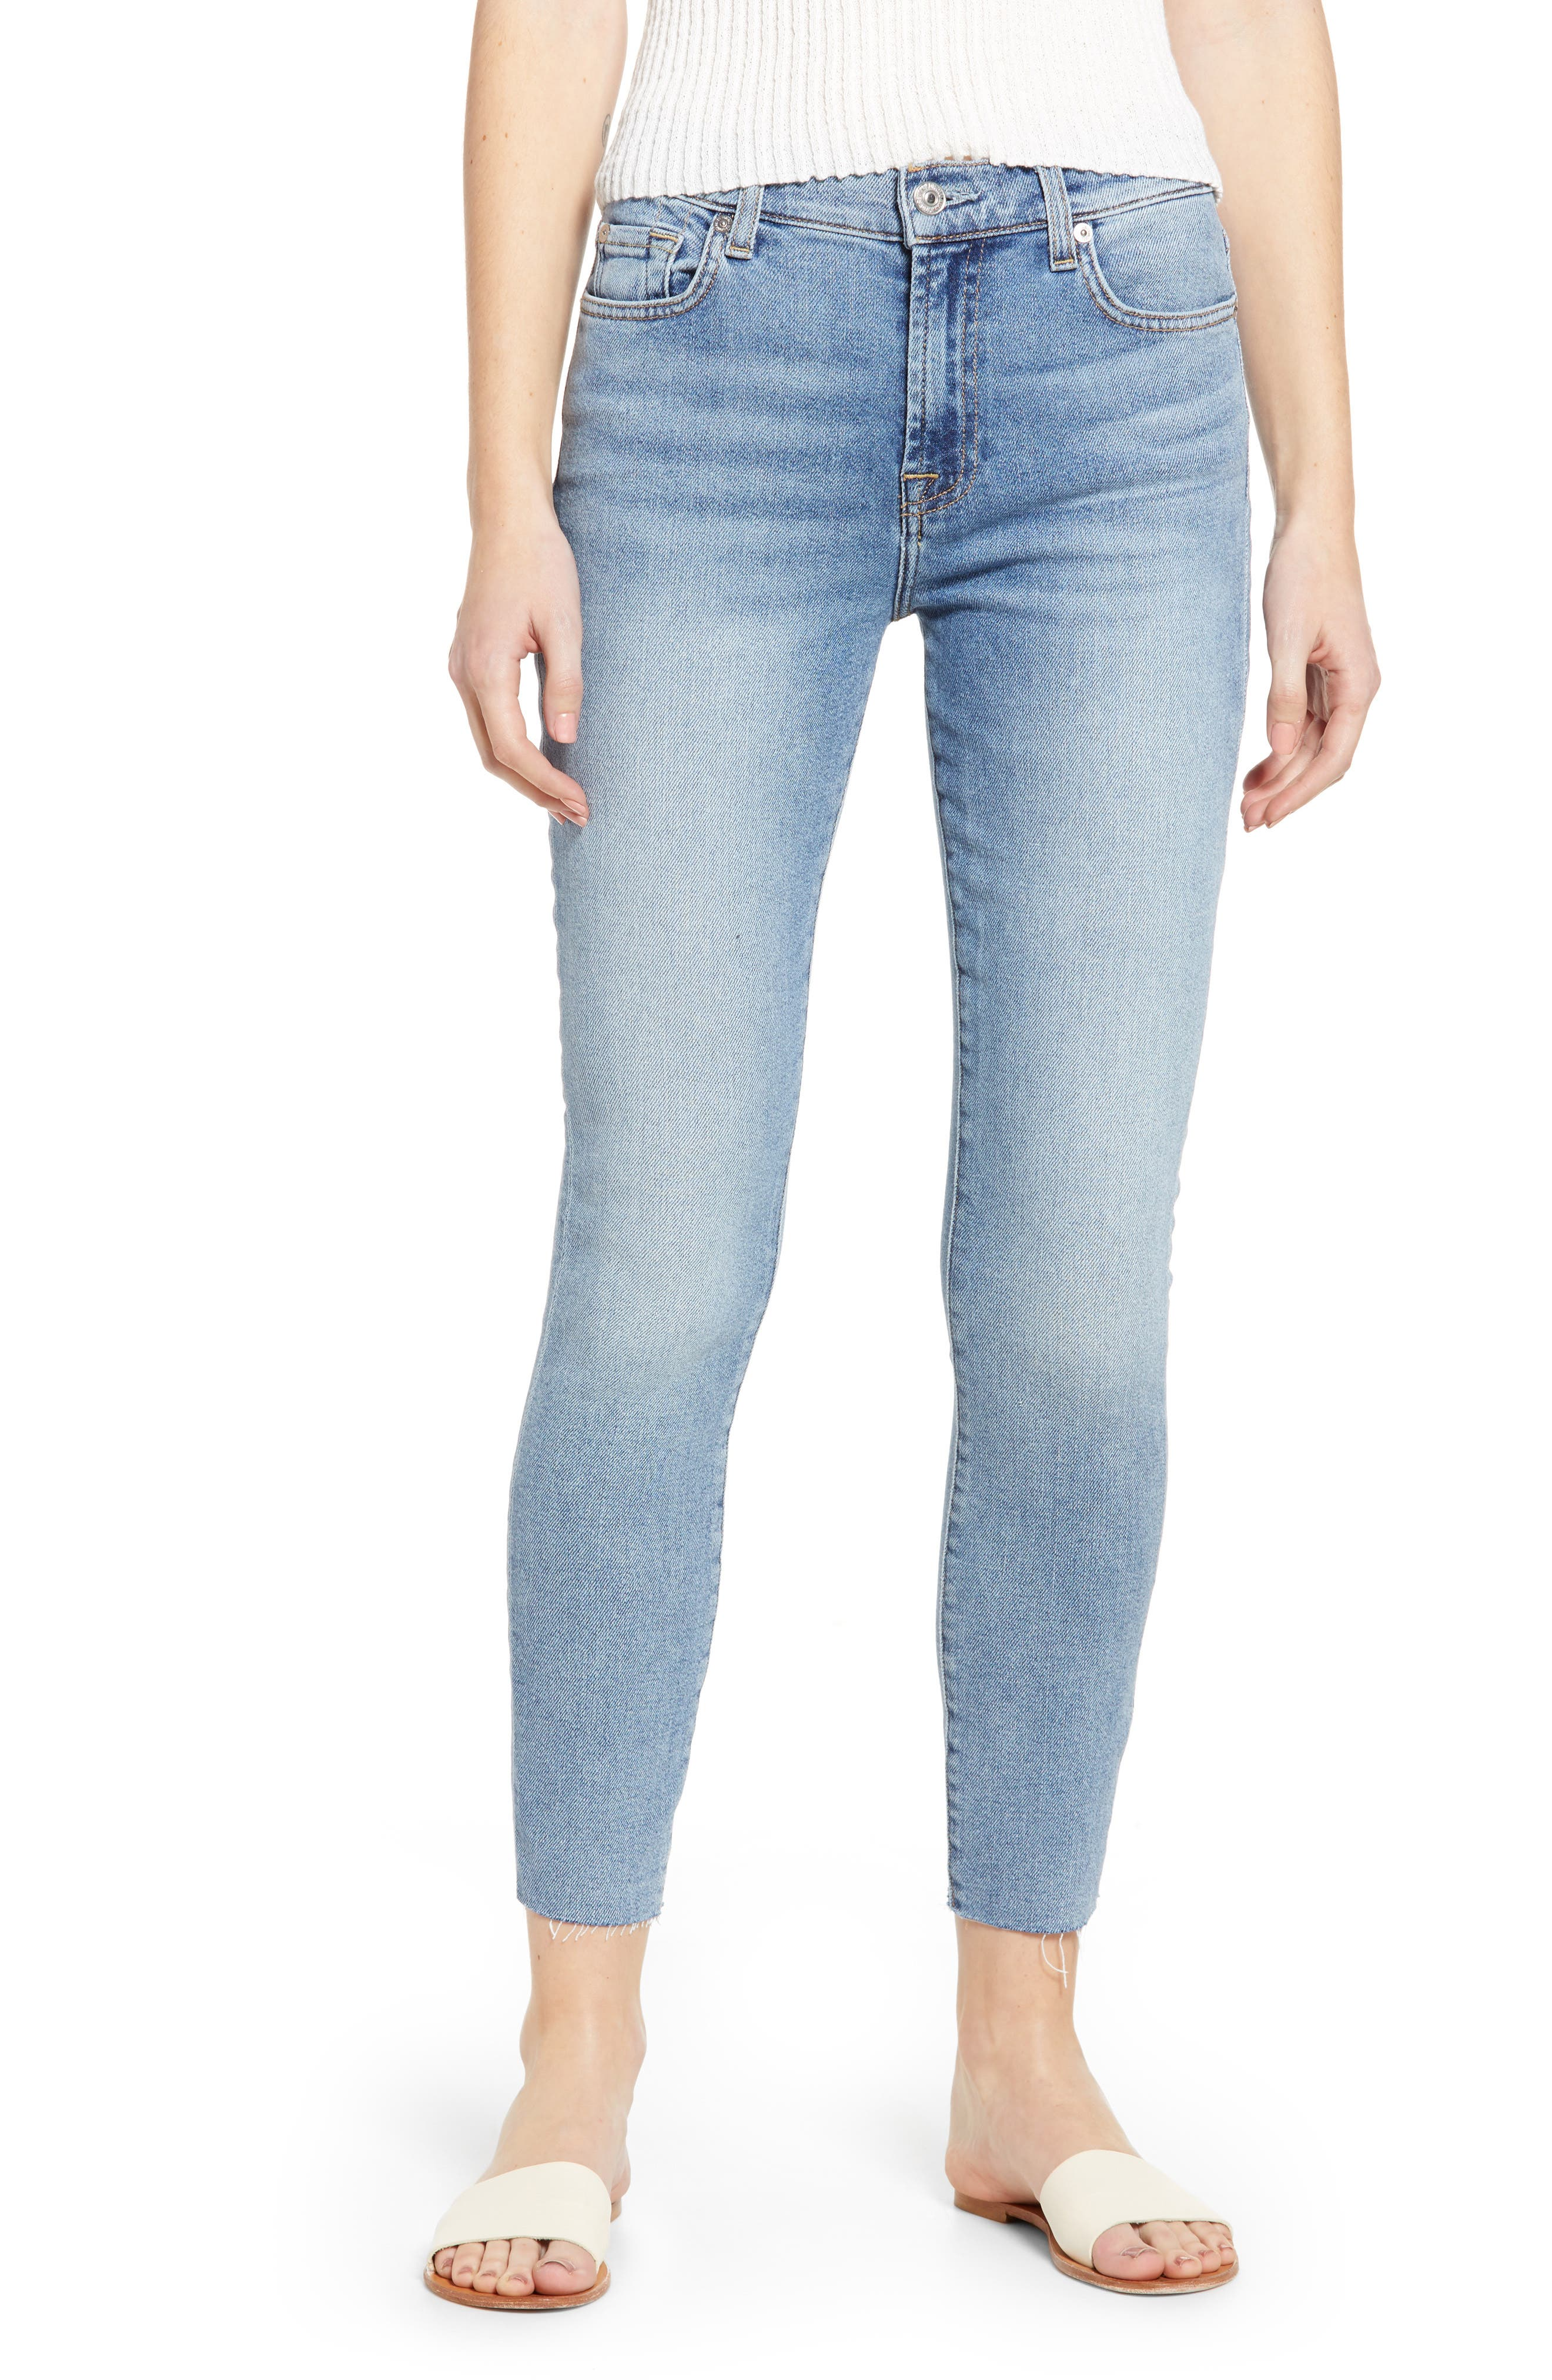 7 FOR ALL MANKIND<SUP>®</SUP>, High Waist Ankle Skinny Jeans, Main thumbnail 1, color, LUXE VINTAGE FLORA